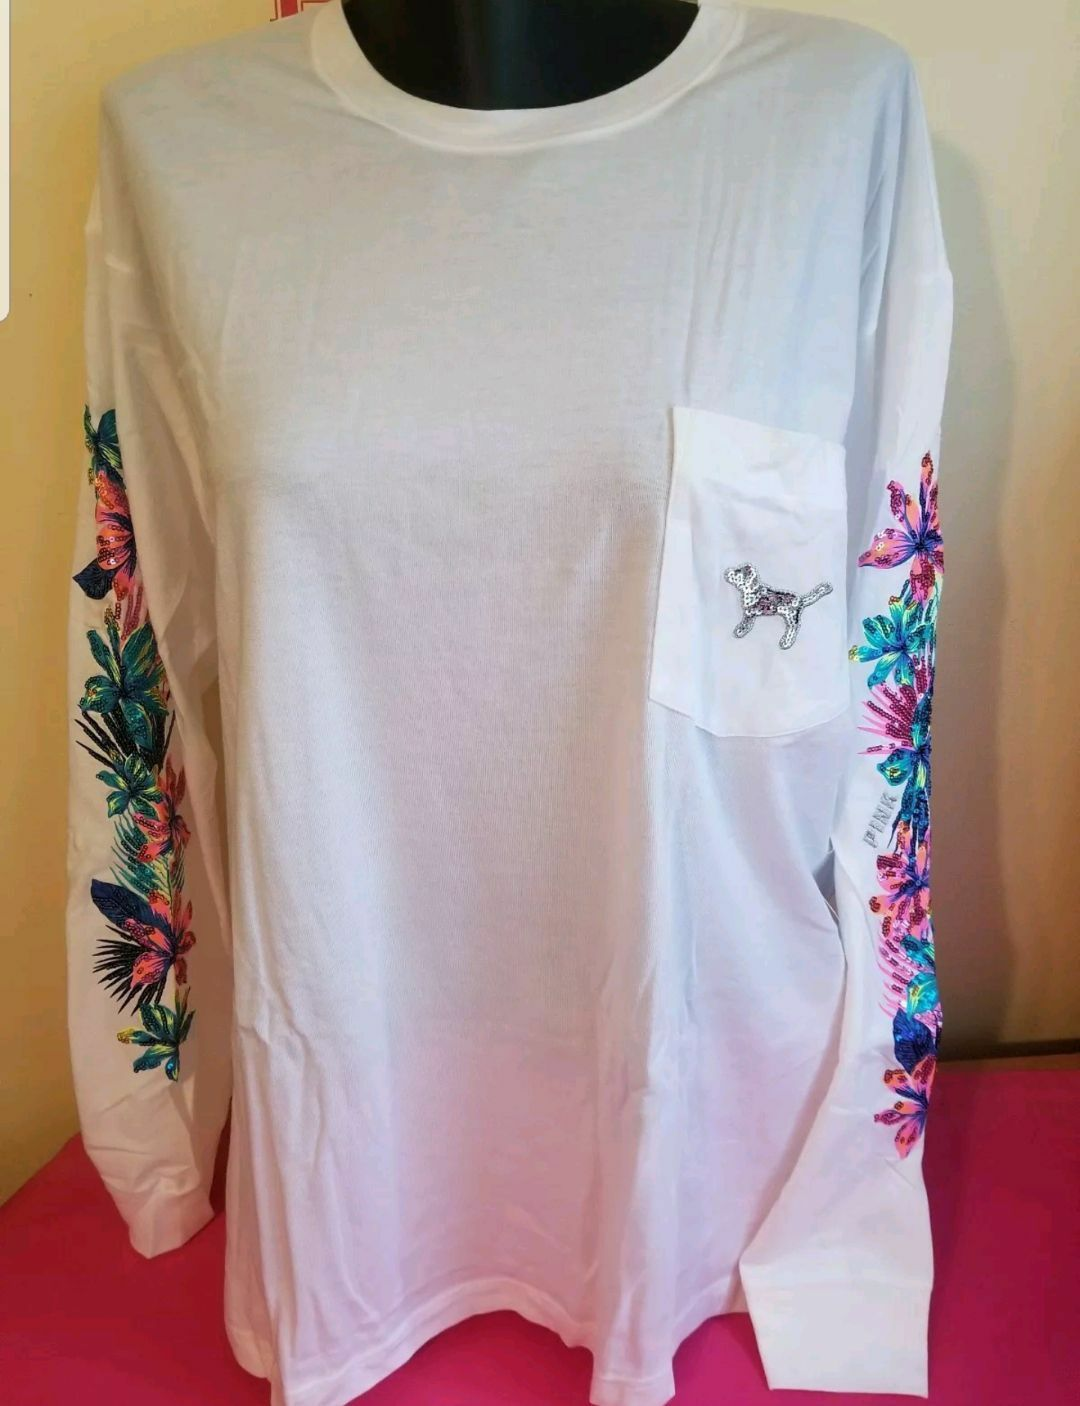 VICTORIA'S SECRET PINK FLORAL BLING CAMPUS LONGSLEEVE SMALL NIP